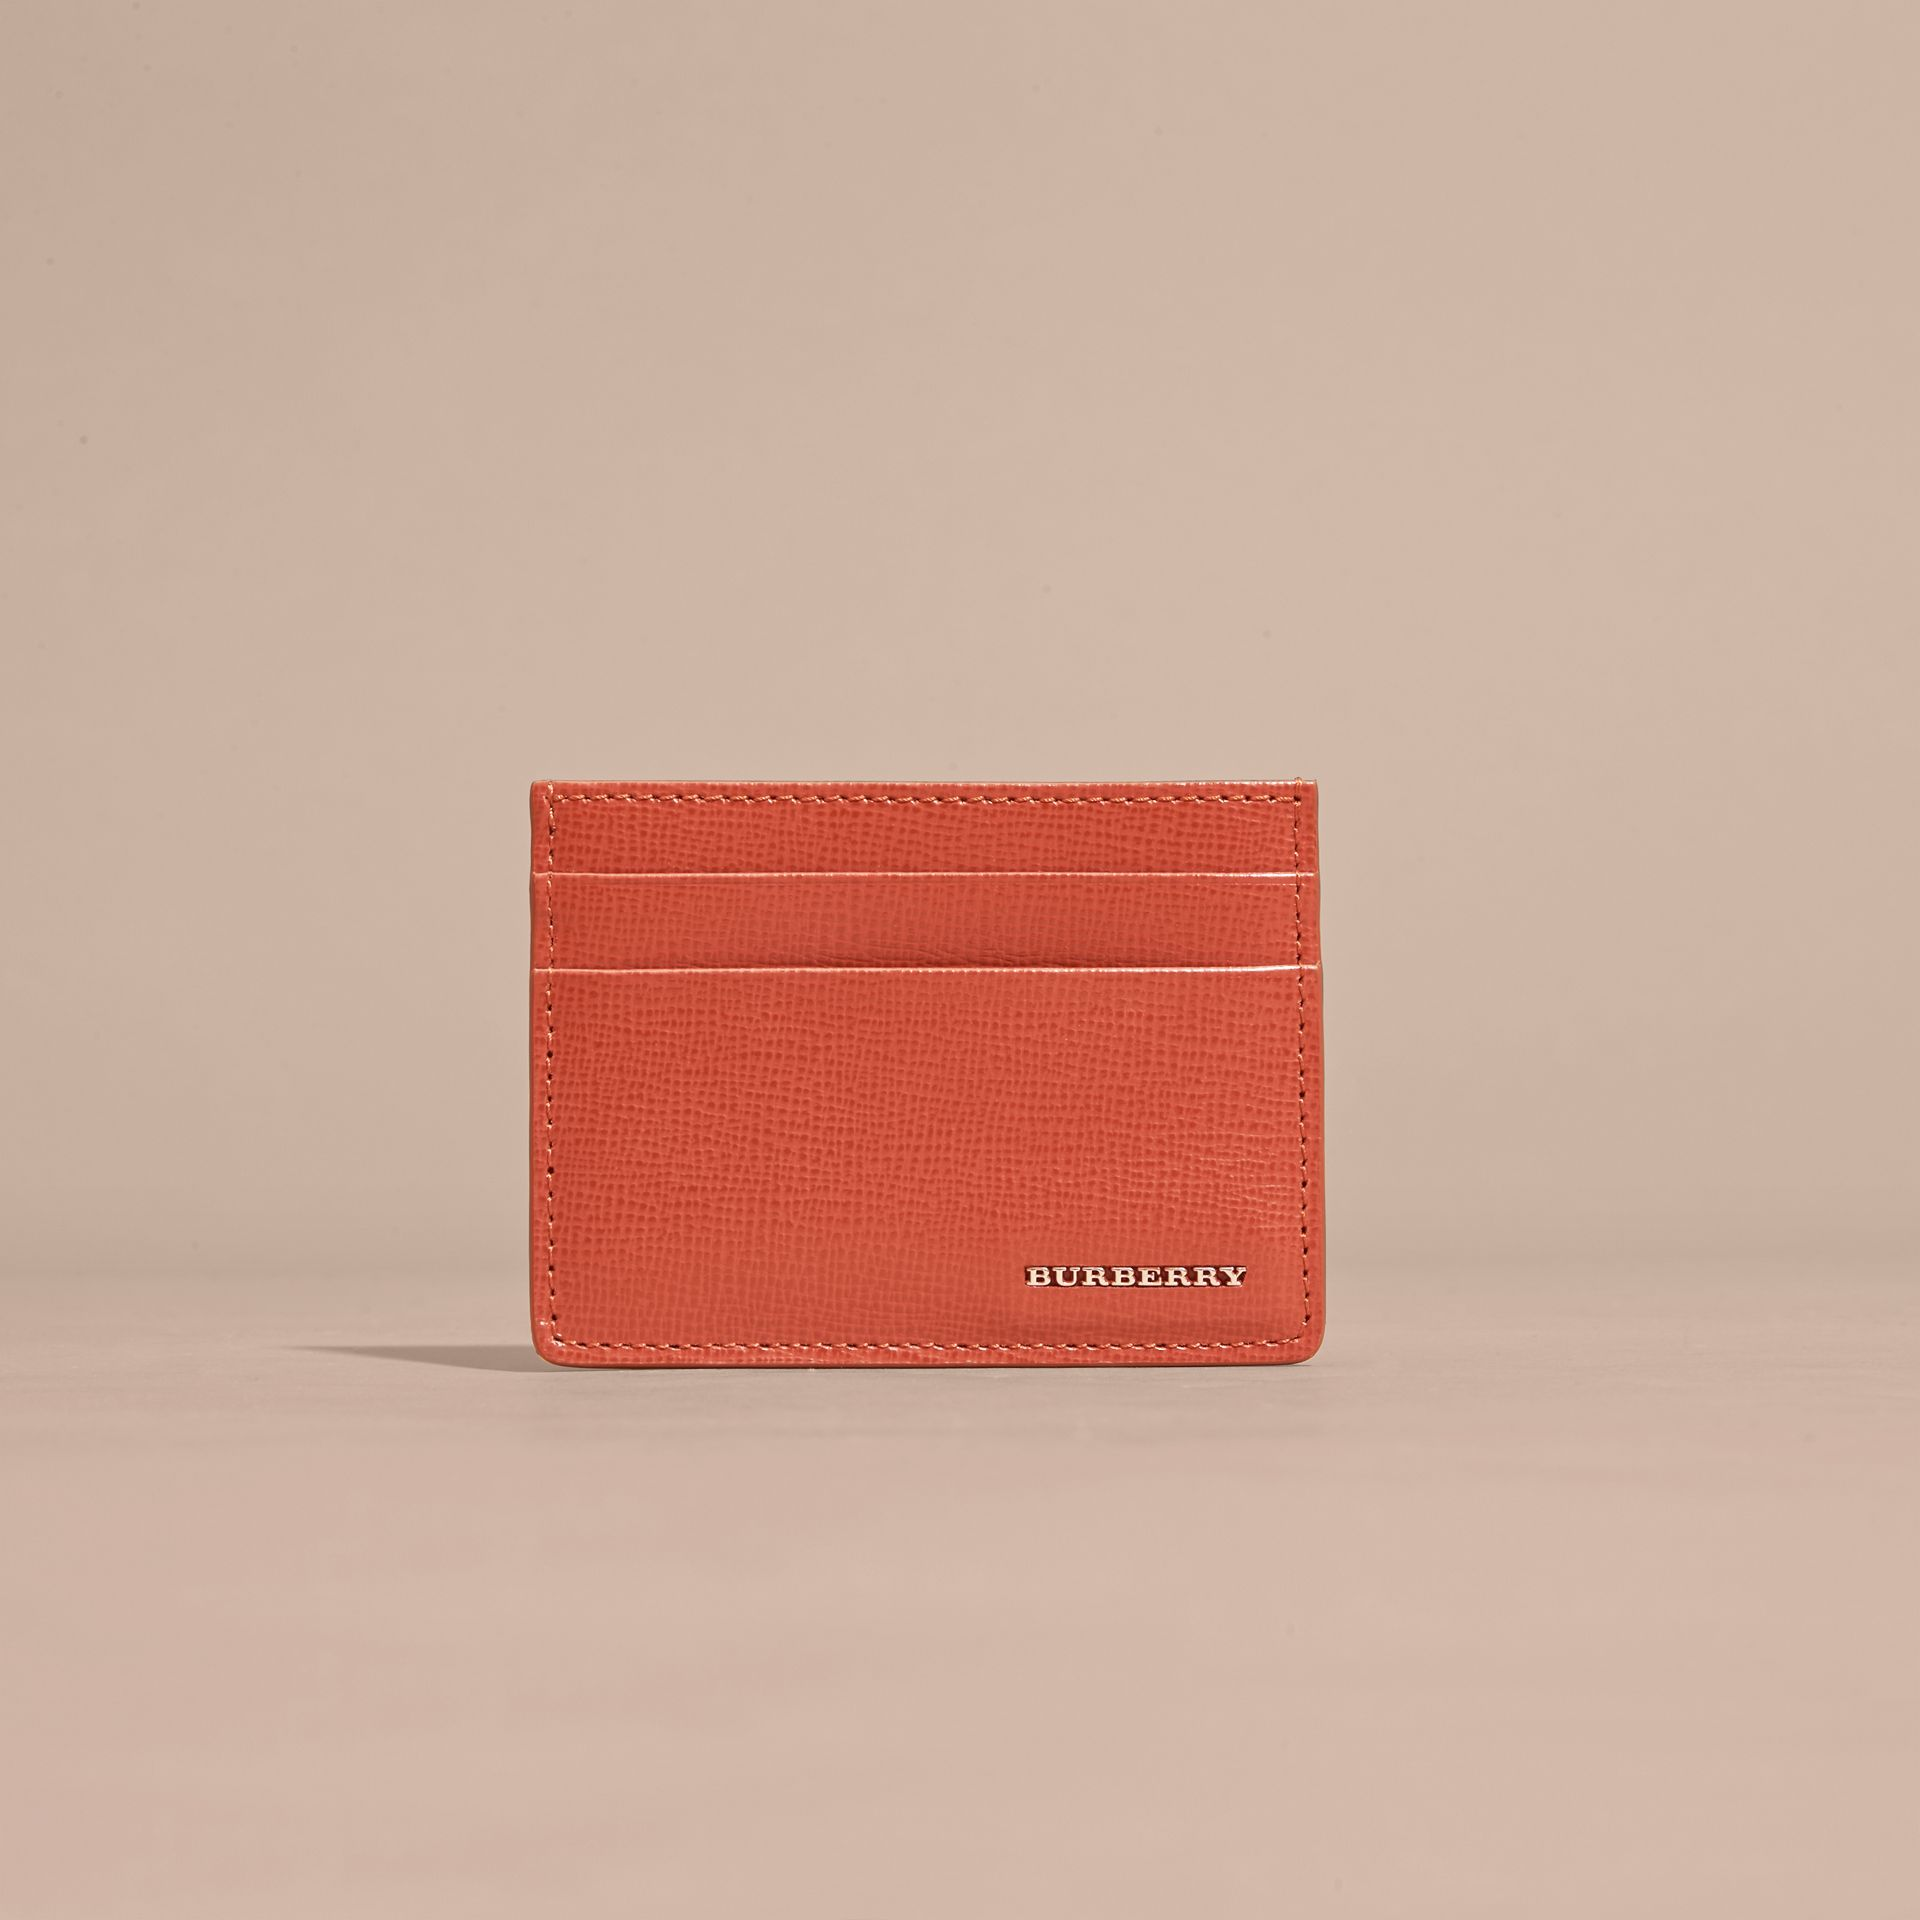 Burnt sienna London Leather Card Case Burnt Sienna - gallery image 2